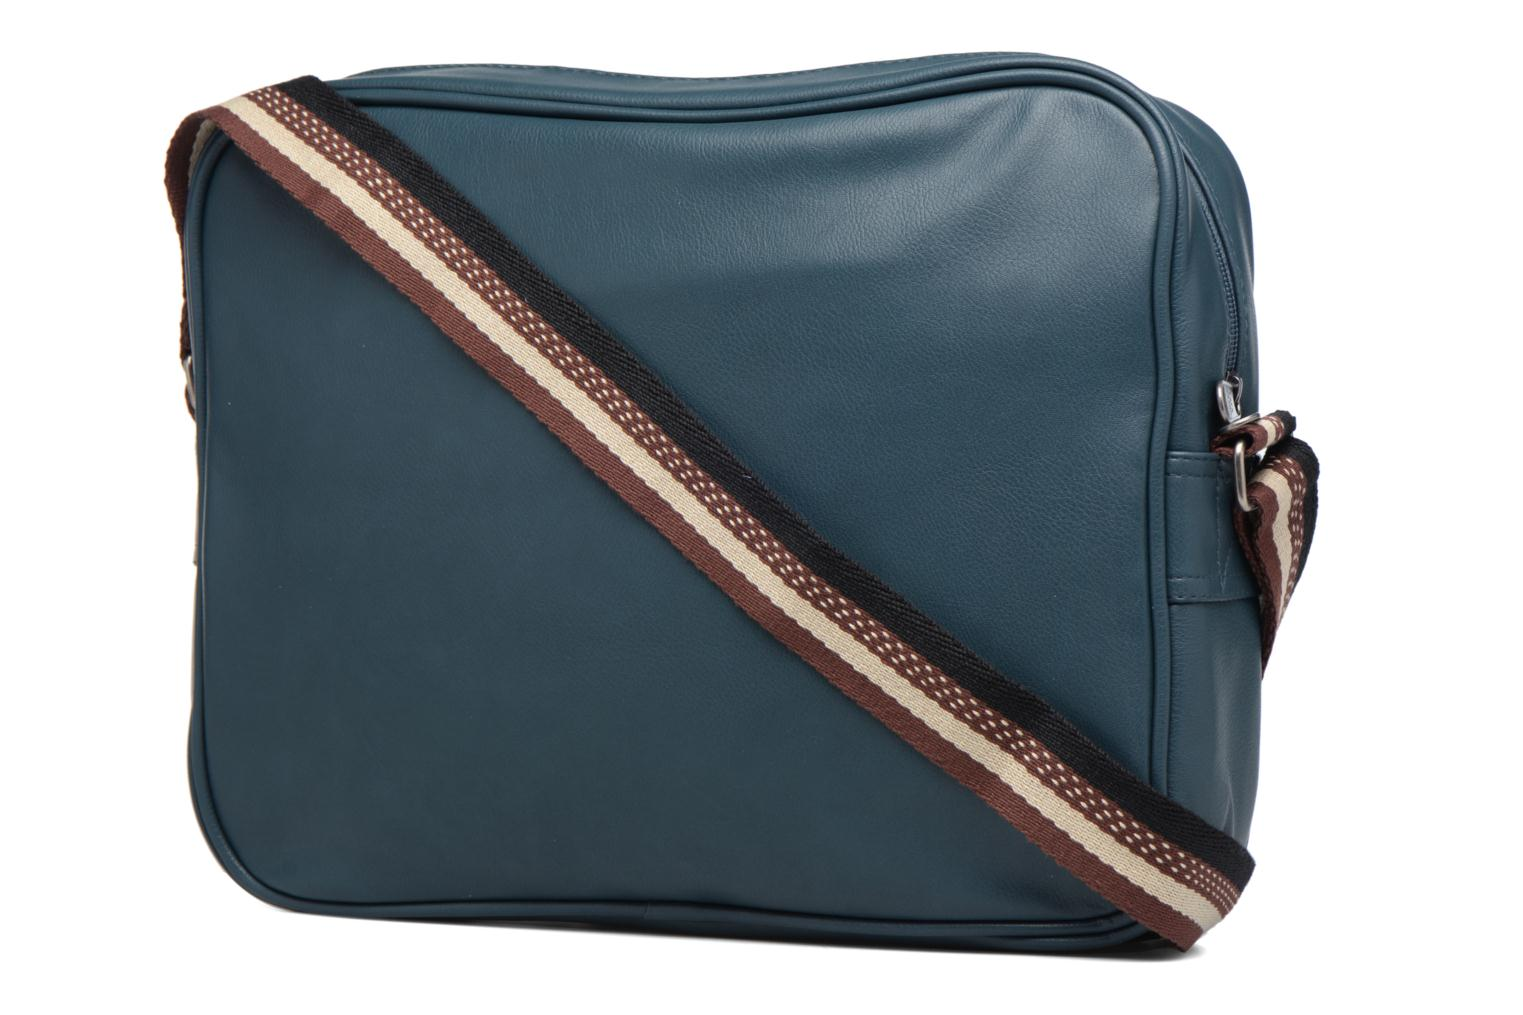 IVY Bag Blue